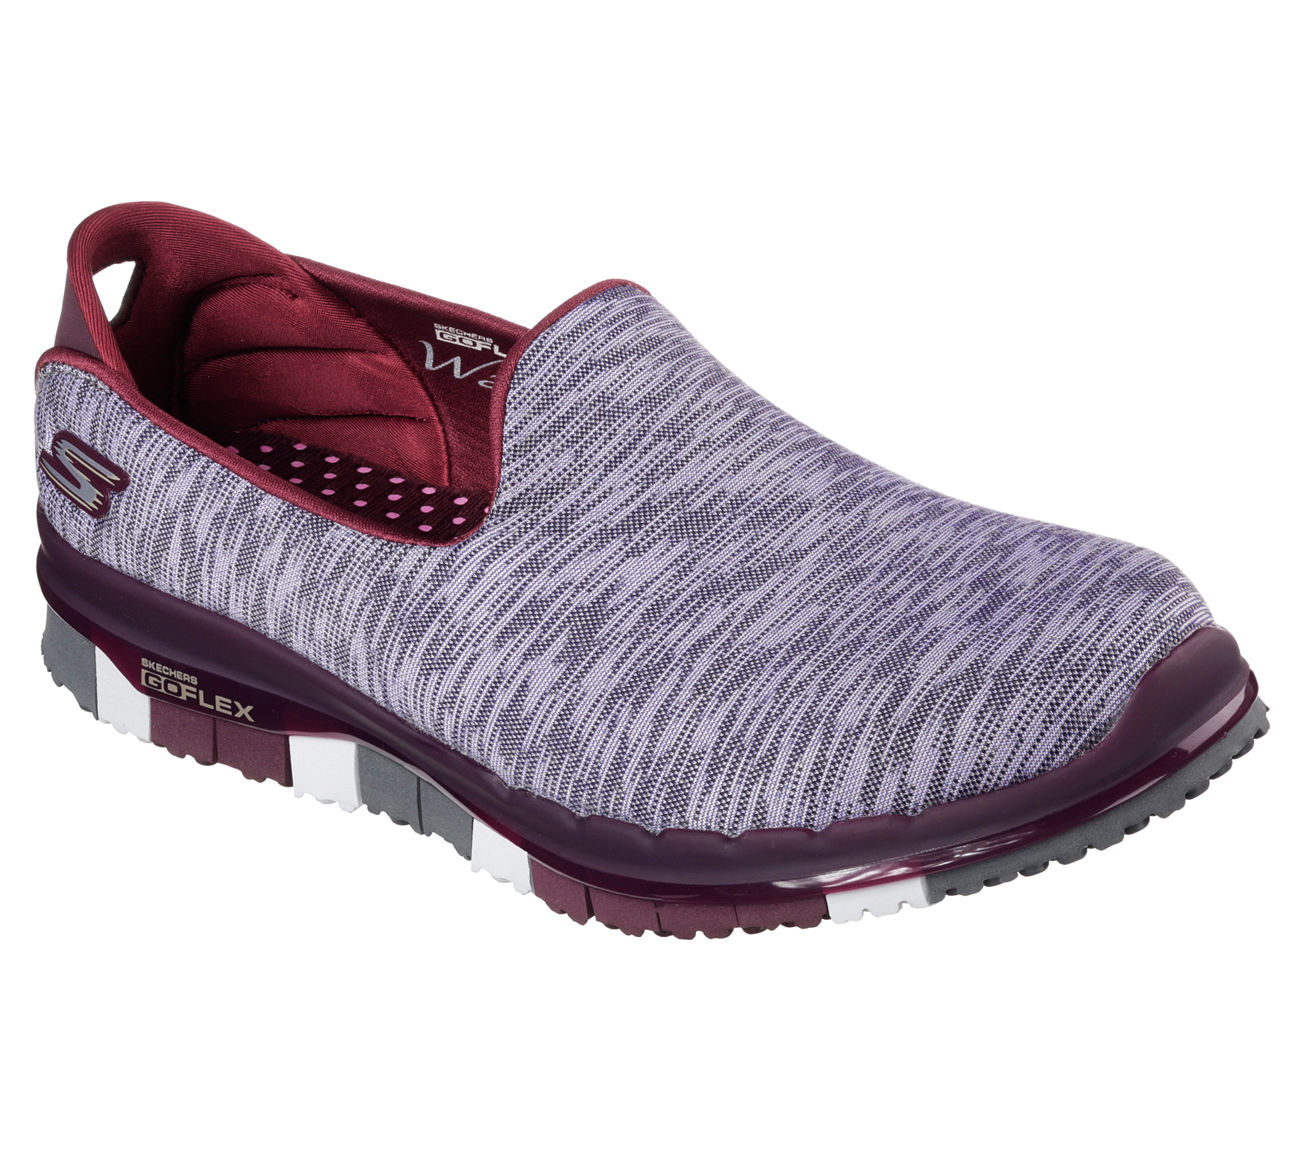 Skechers Women'S Go Flex Ability Burg